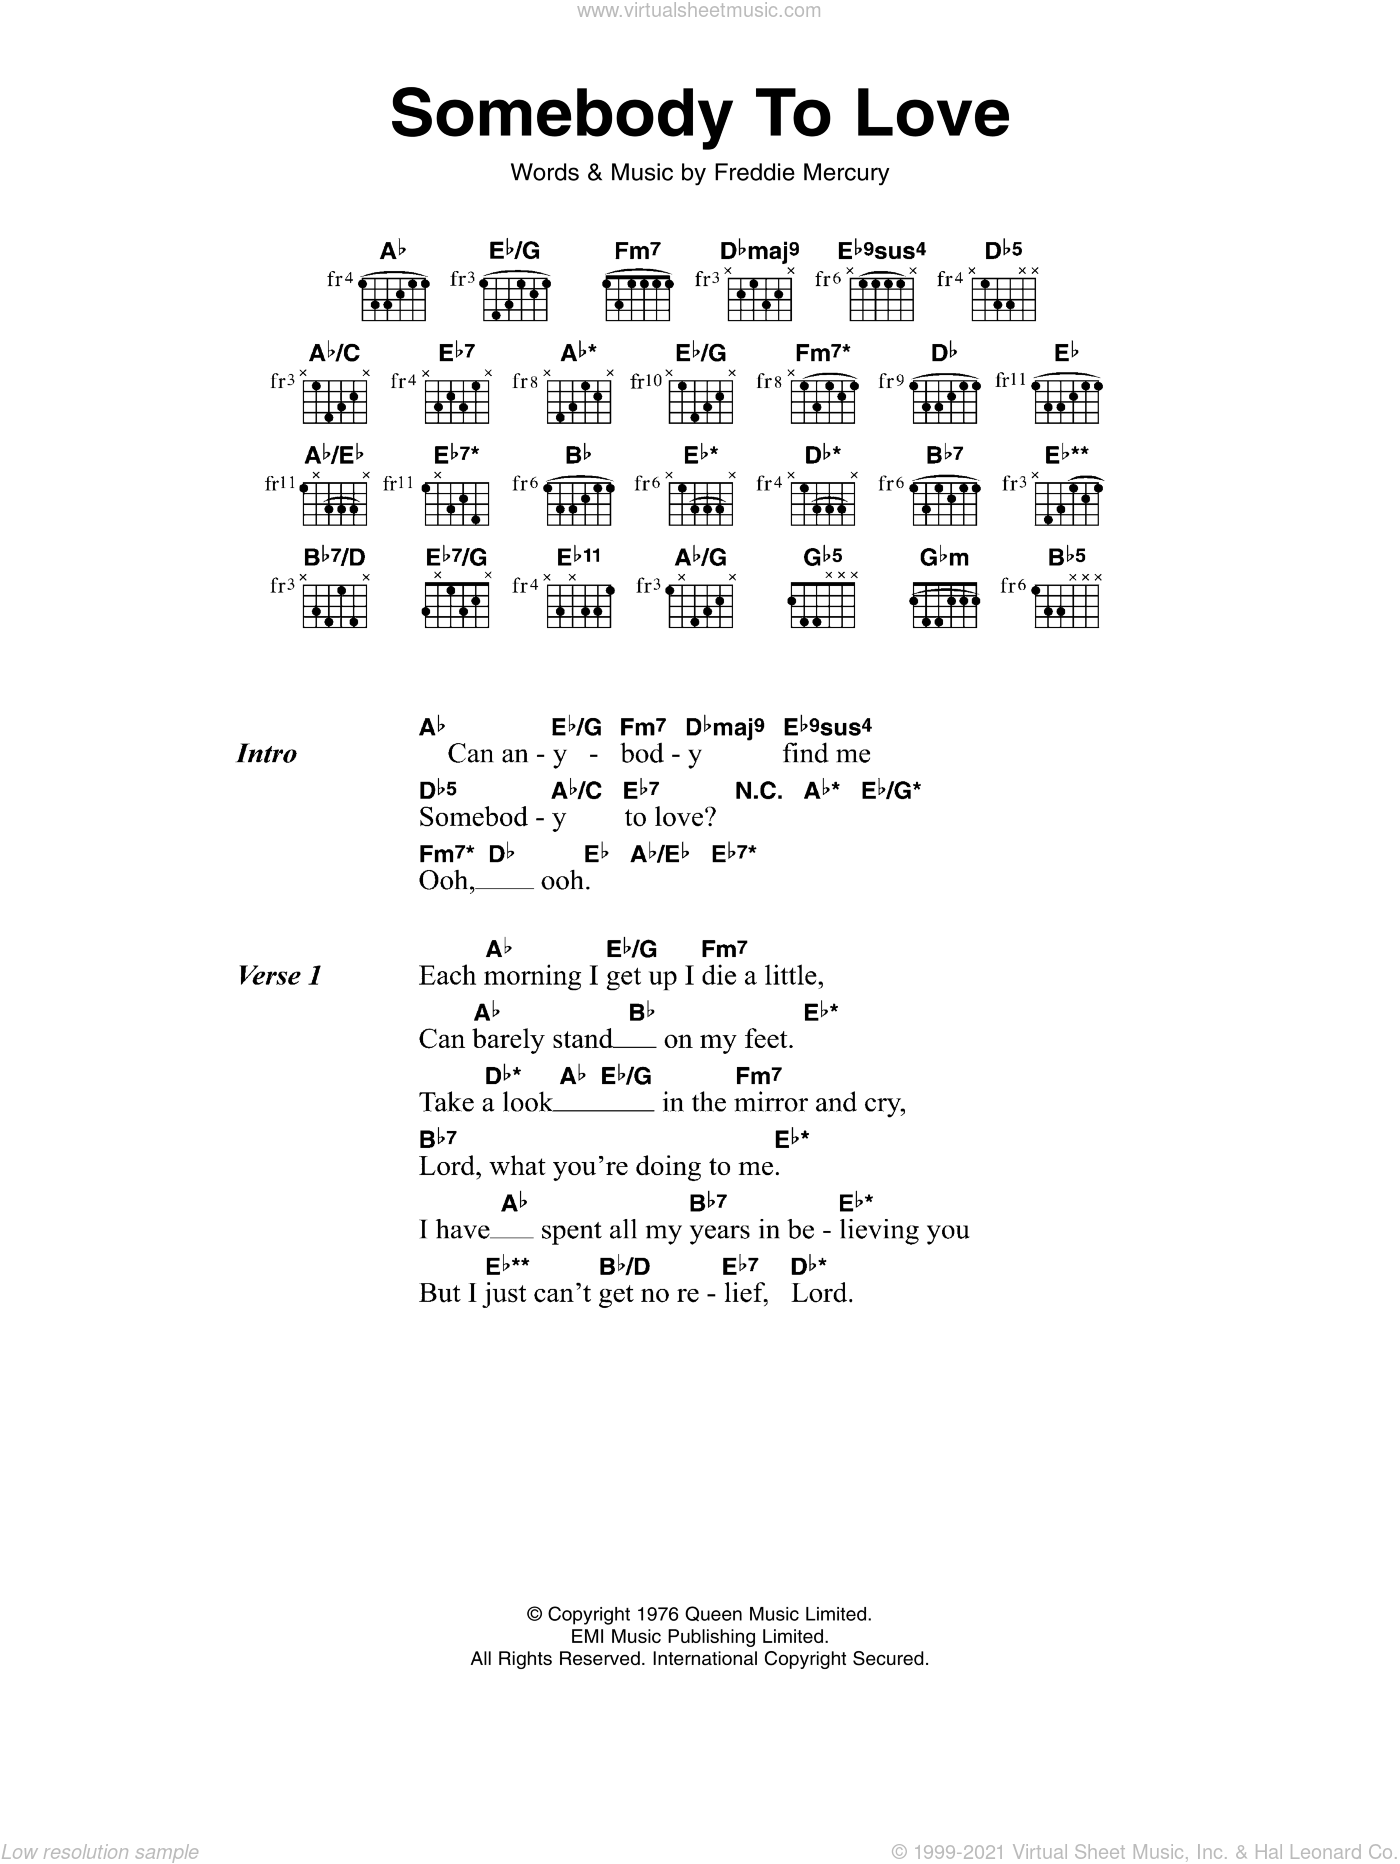 Queen Somebody To Love Sheet Music For Guitar Chords Pdf